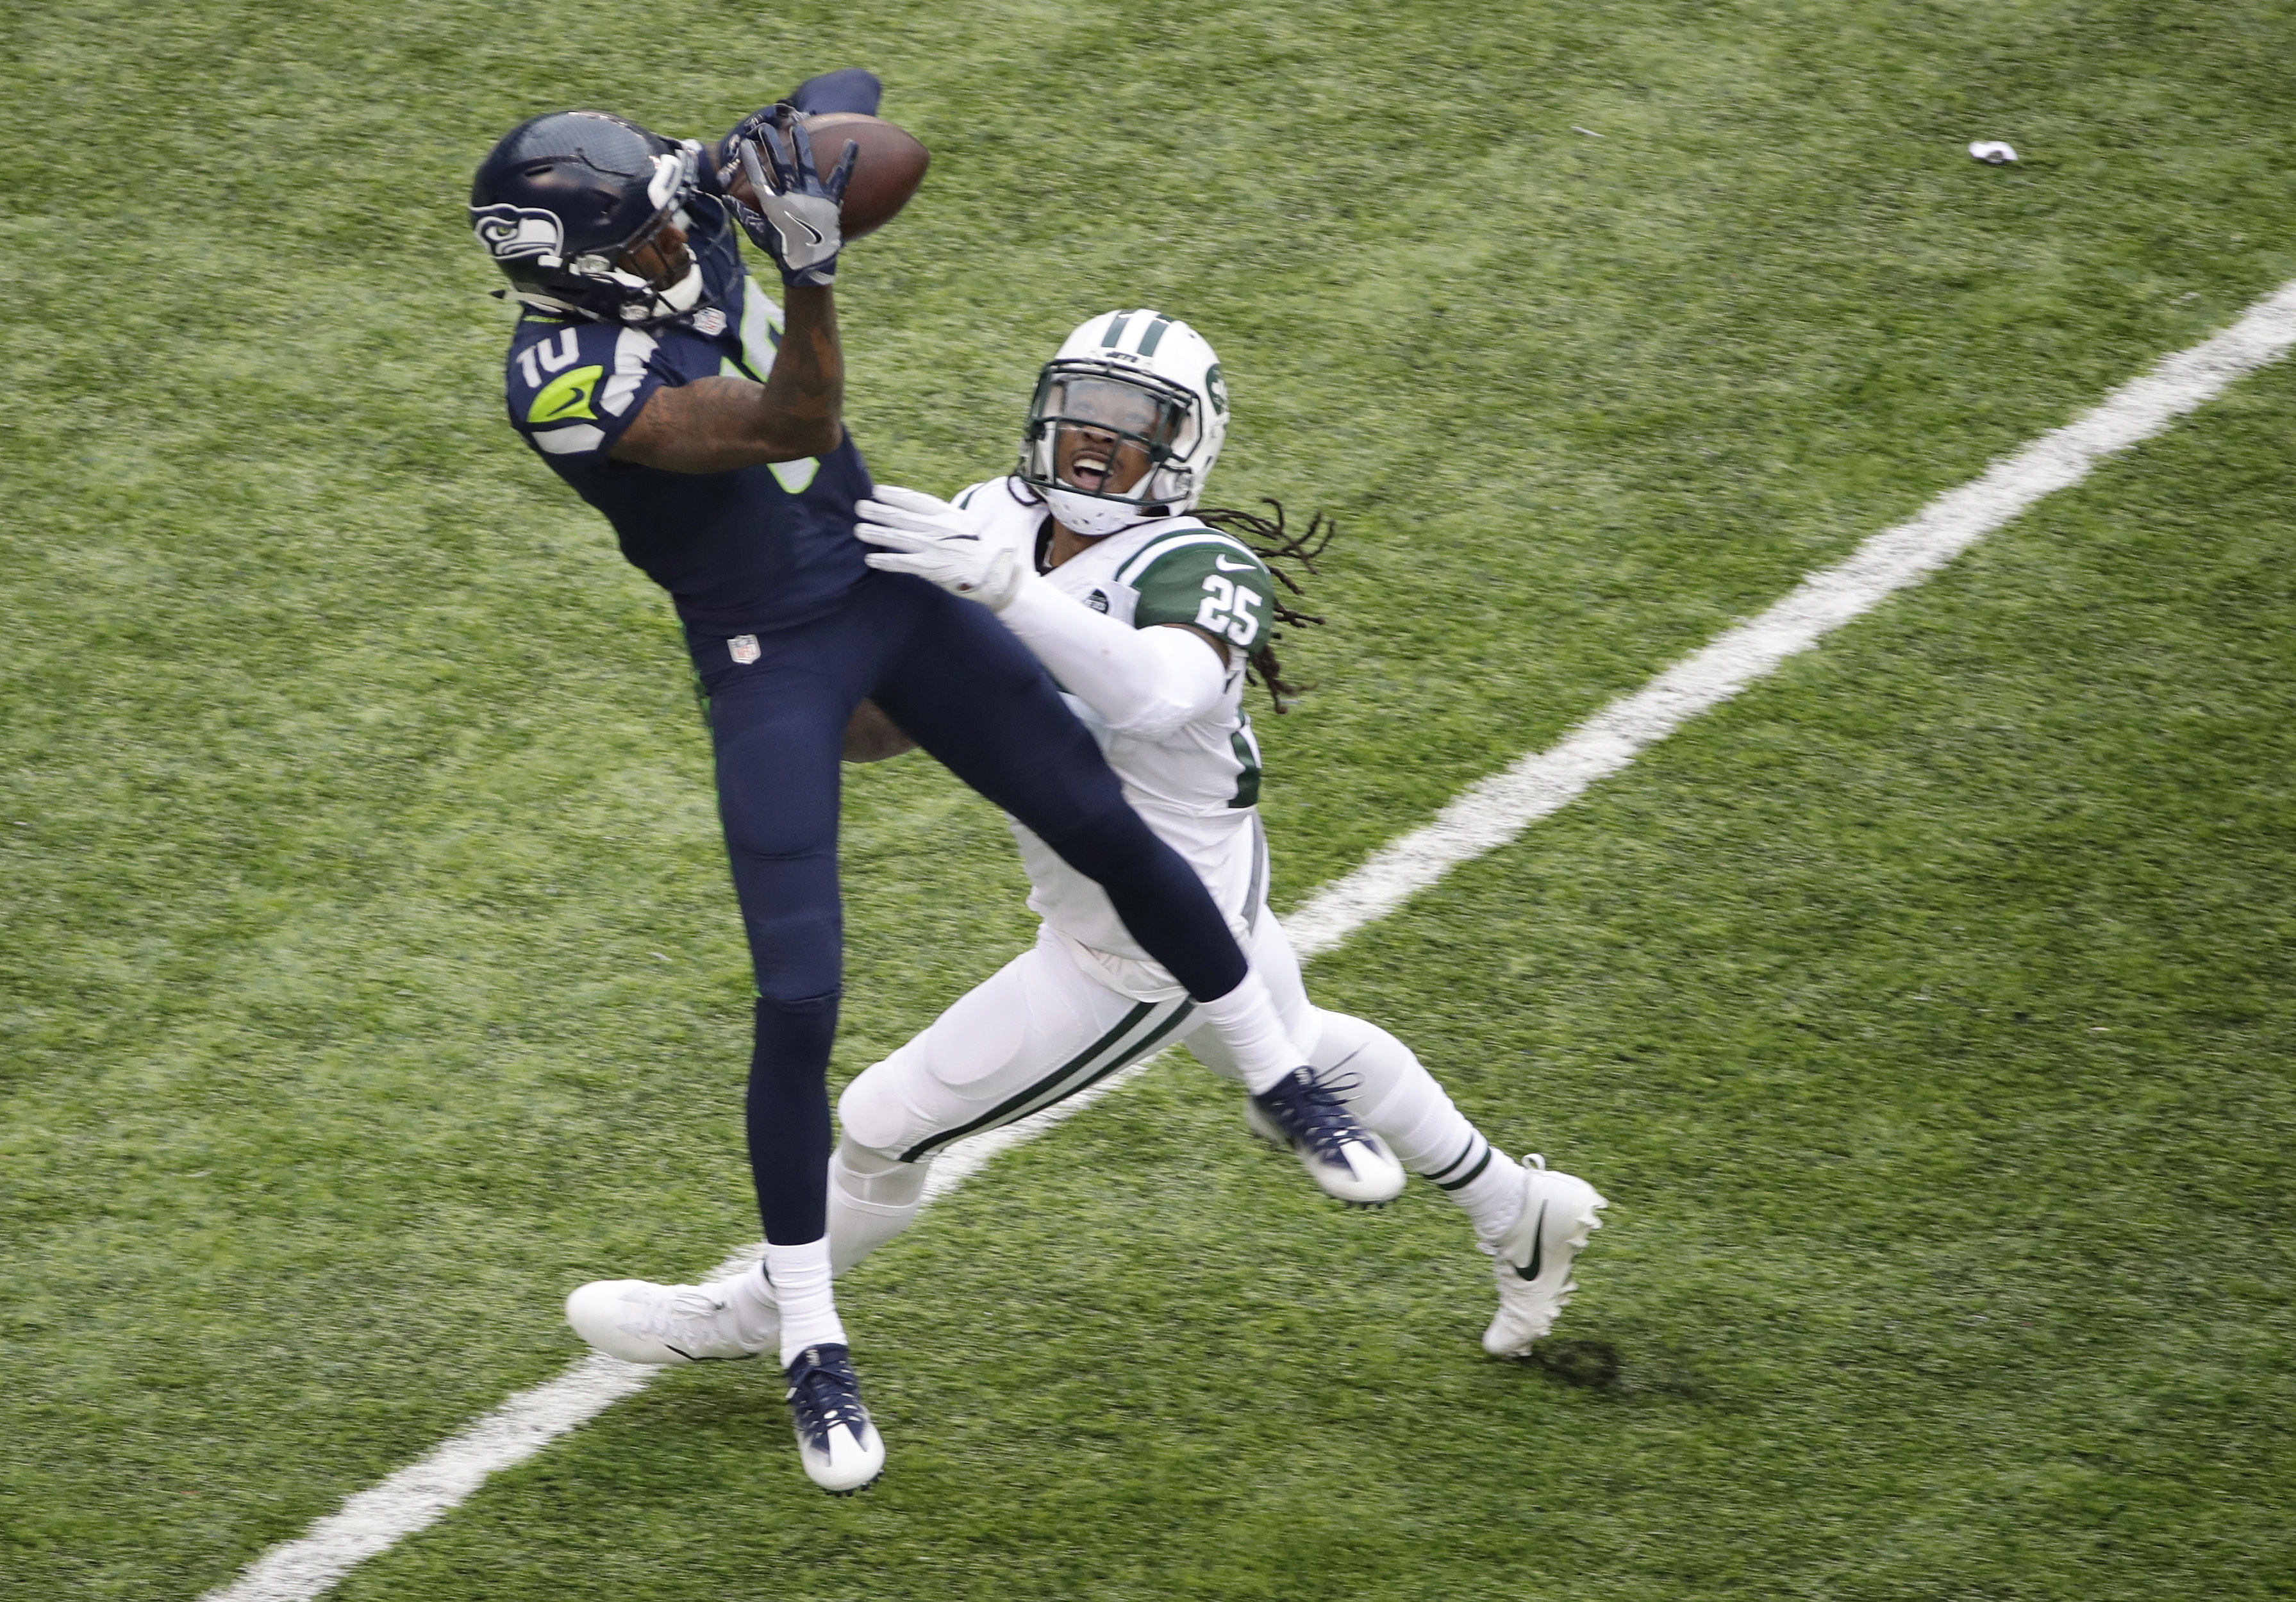 """FILE - In this Oct. 2, 2016, file photo, Seattle Seahawks wide receiver Paul Richardson catches a pass in front of New York Jets' Calvin Pryor (25) during an NFL football game in East Rutherford, N.J.  """"There's a target on our backs in the secondary,"""" Pry"""